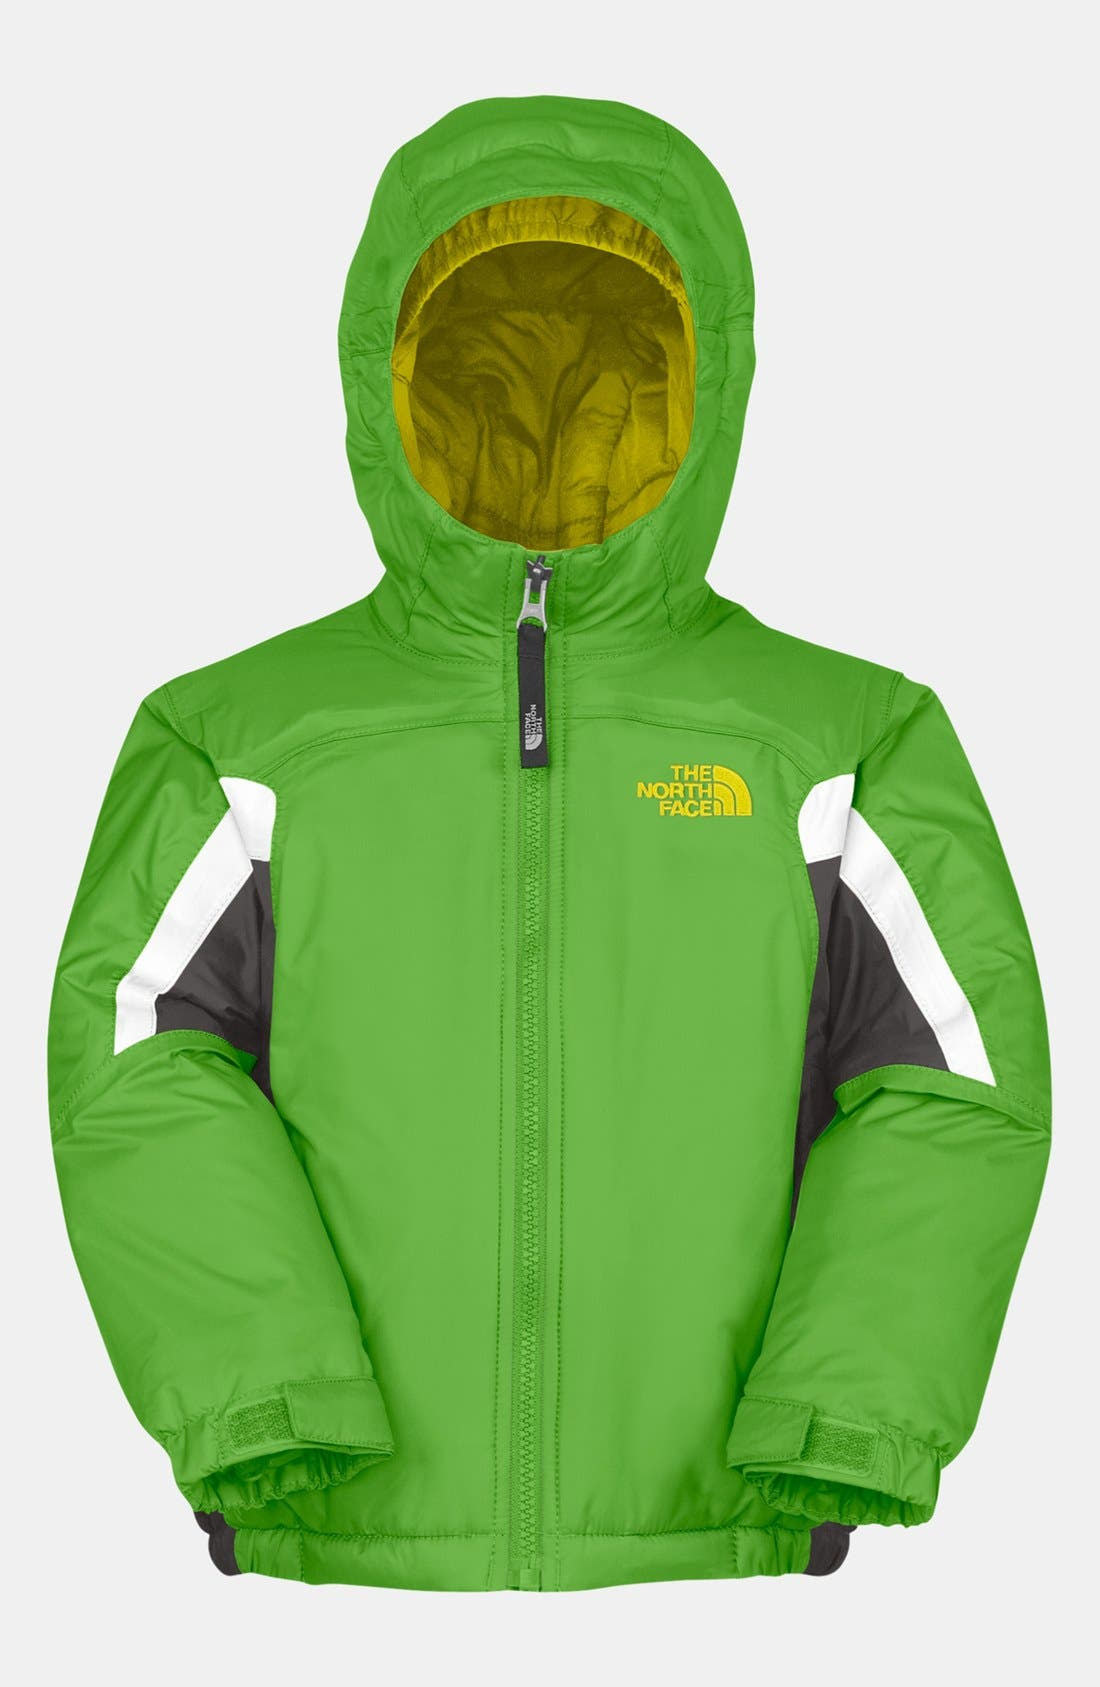 Alternate Image 1 Selected - The North Face 'Out of Bounds' Jacket (Toddler Boys)